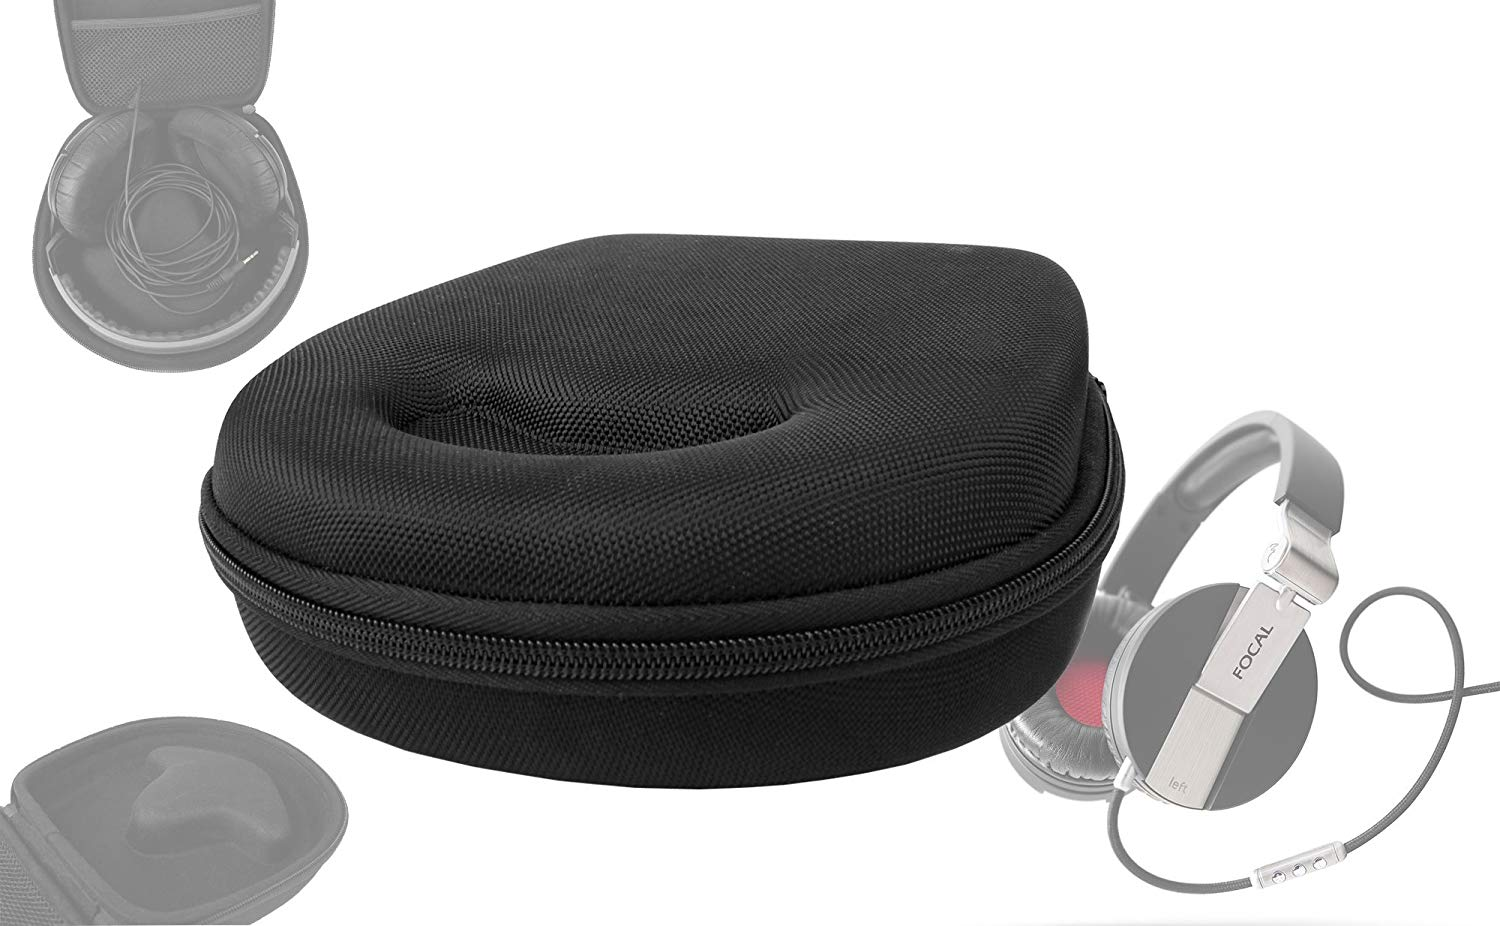 DURAGADGET Hard EVA Storage Case For Headphones/Earbuds, With Compartment (Black) For Focal Spirit One